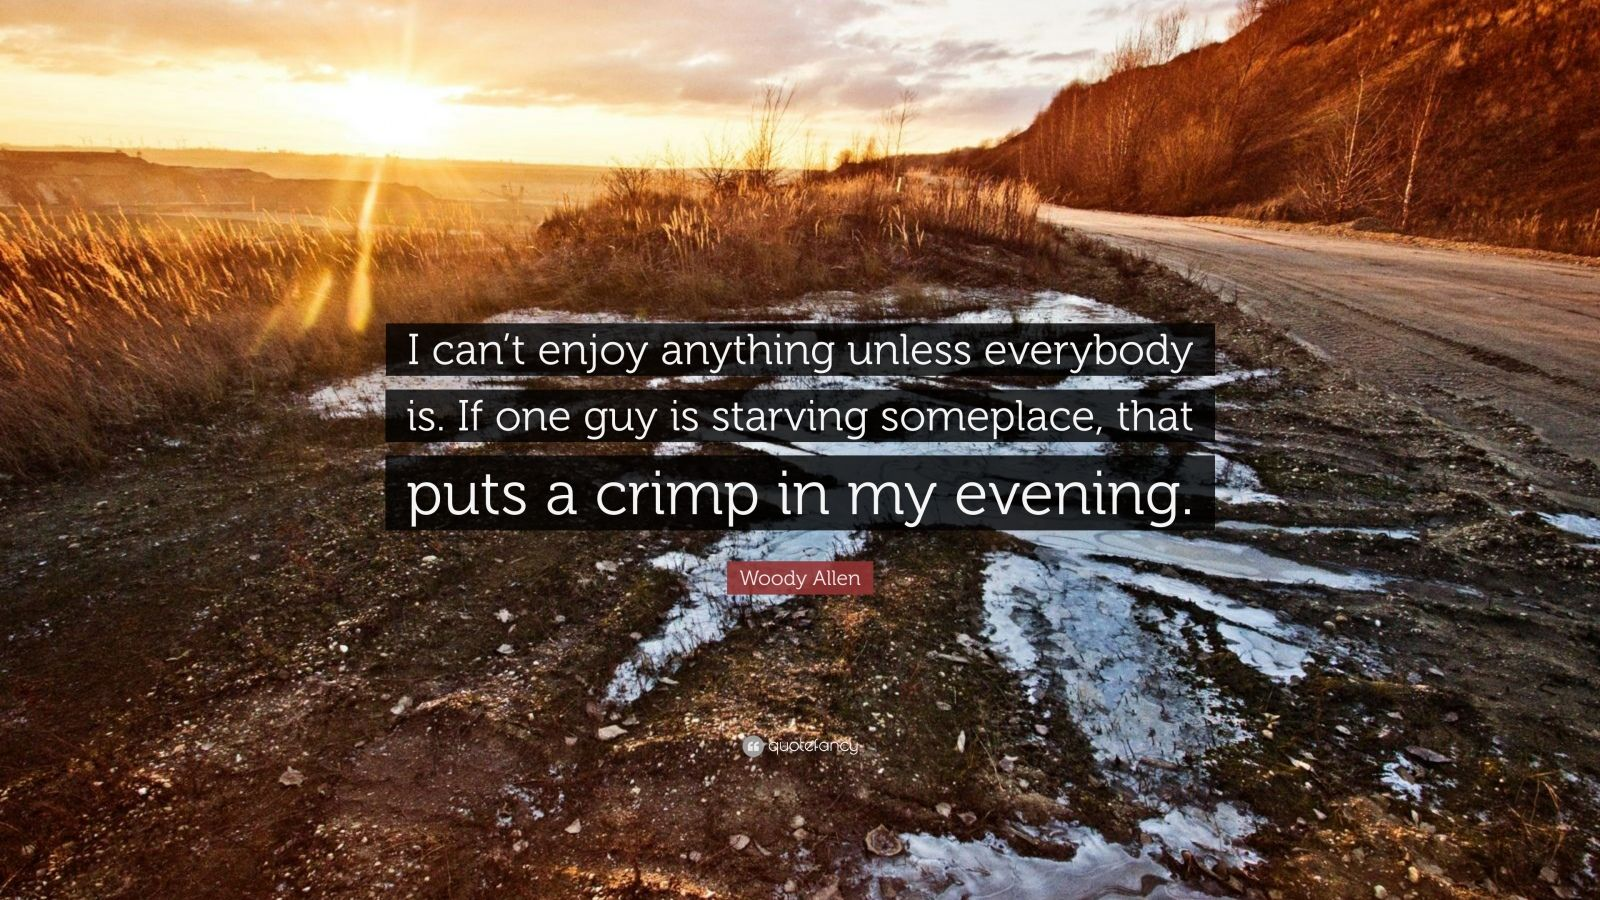 """Woody Allen Quote: """"I can't enjoy anything unless everybody is. If one guy is starving someplace, that puts a crimp in my evening."""""""